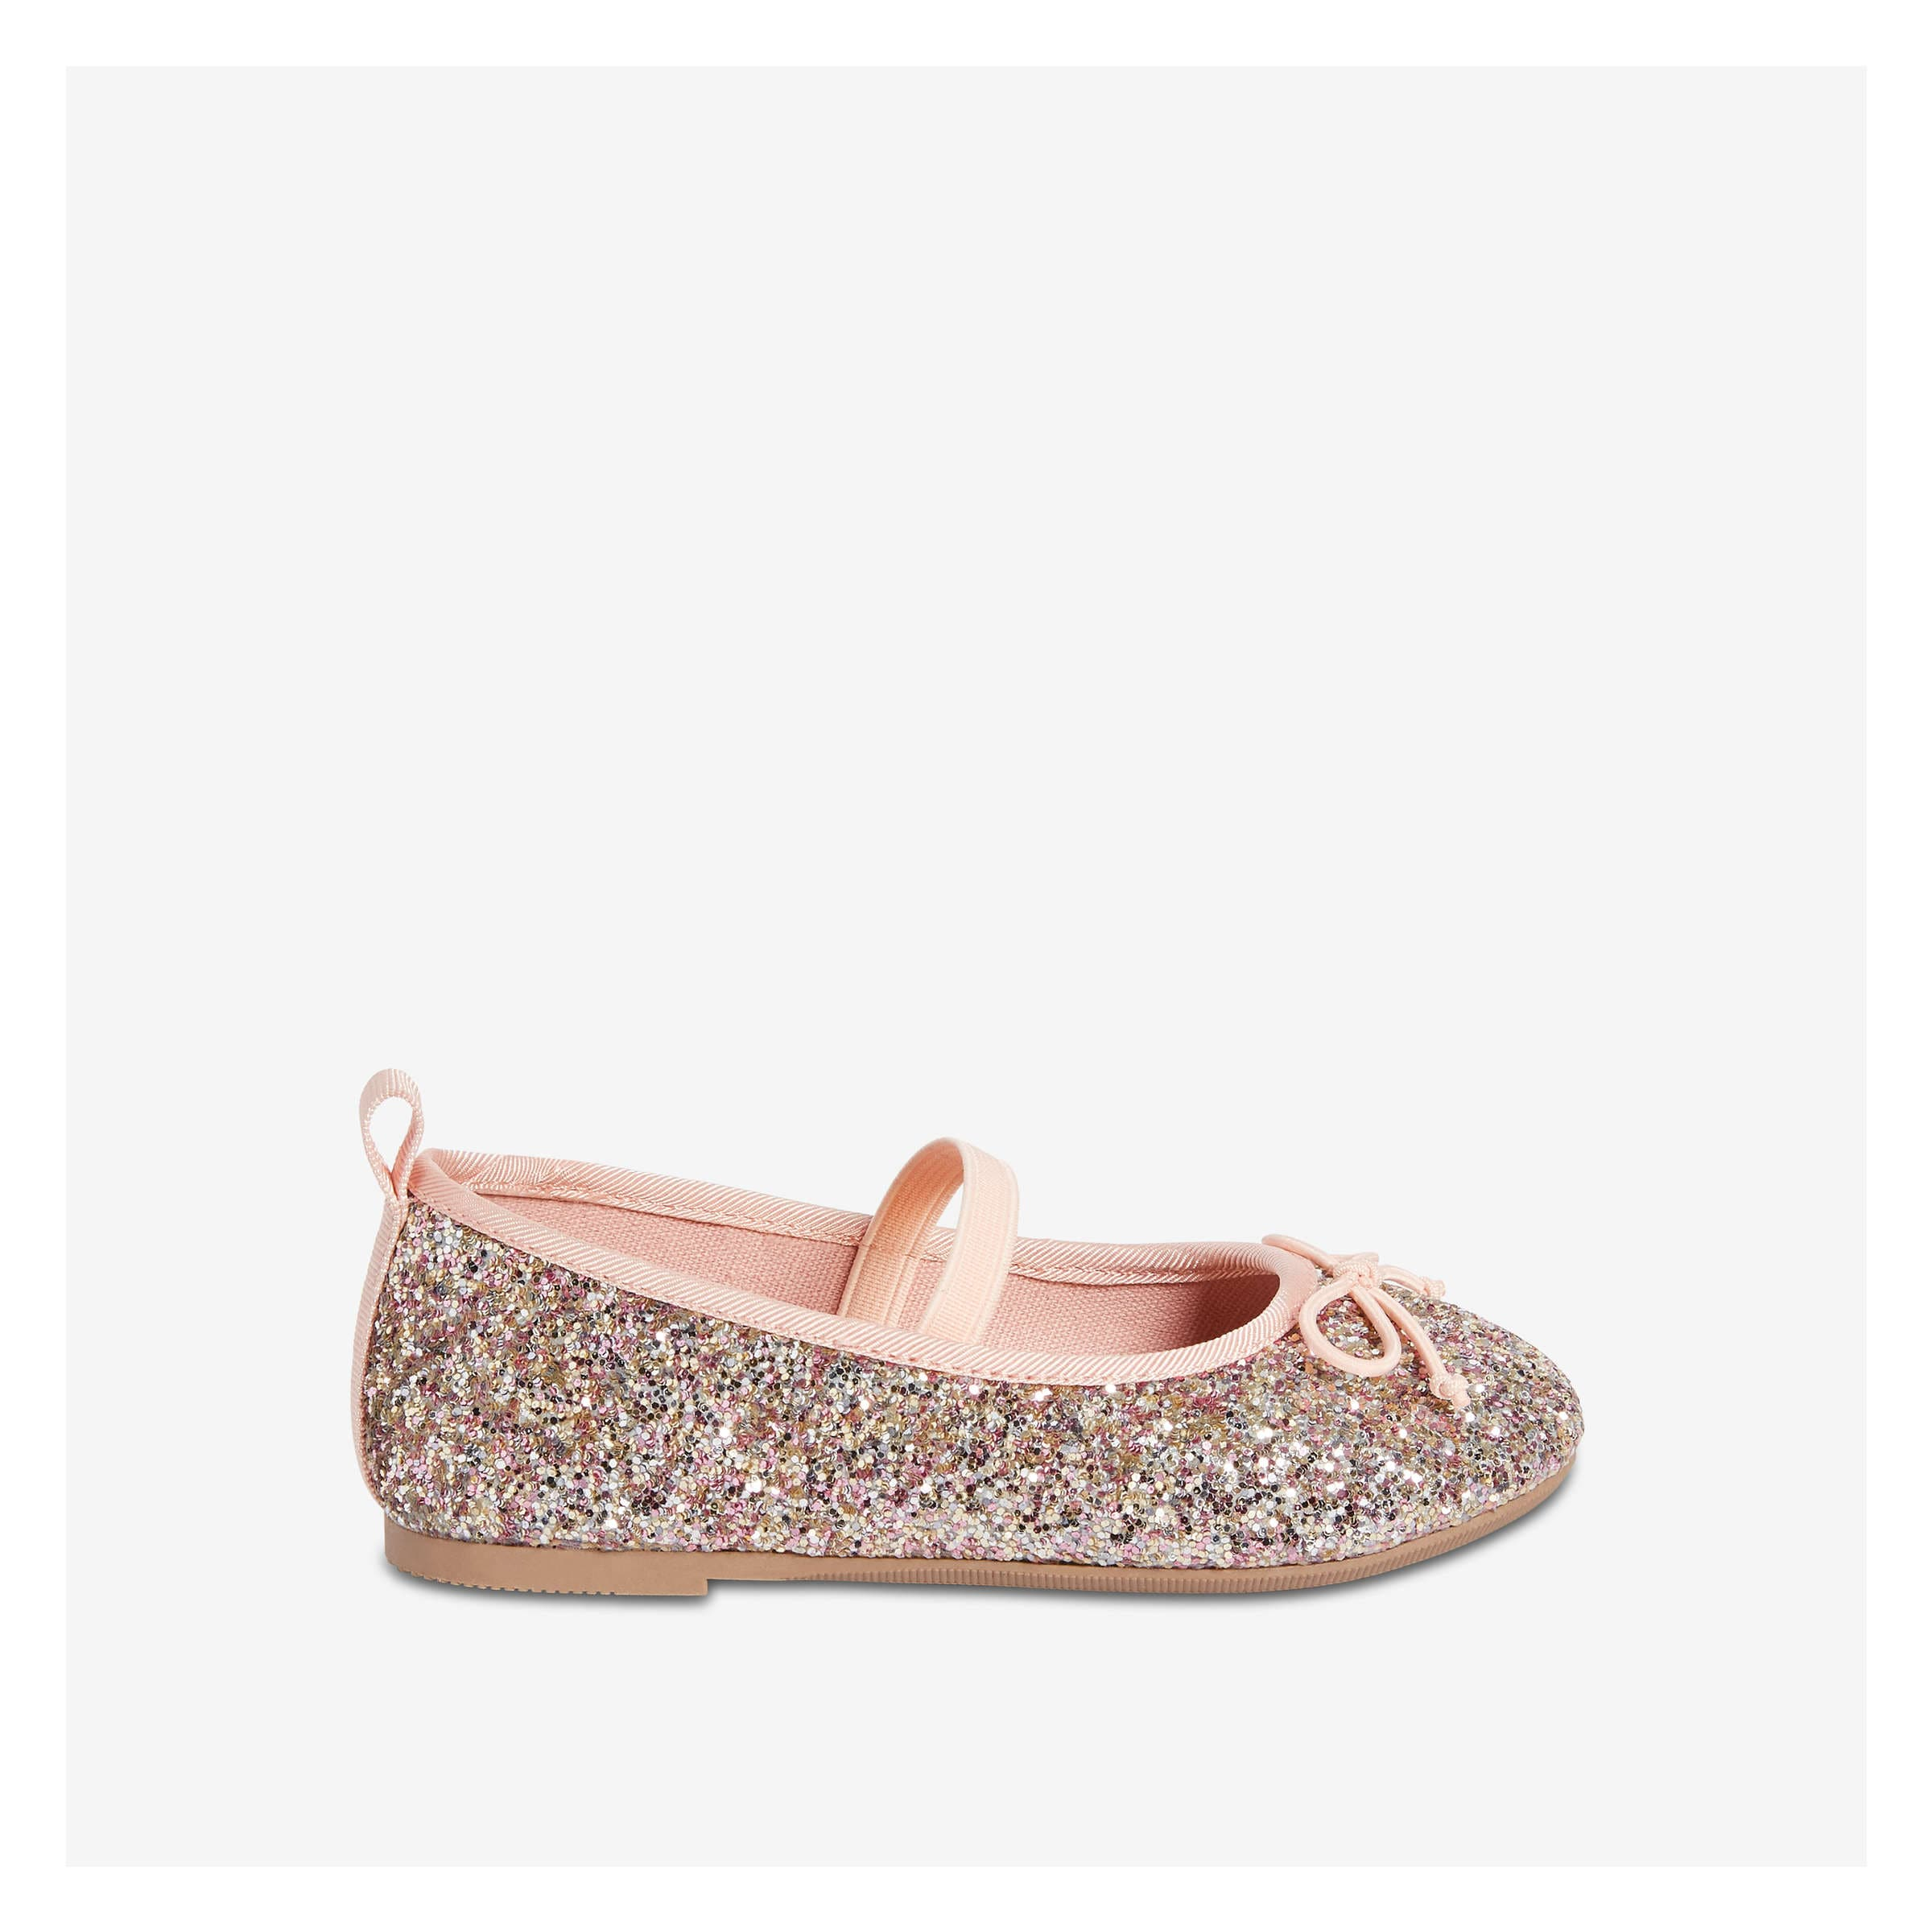 96823d65b Toddler Girls  Glitter Ballet Flat in Pink from Joe Fresh